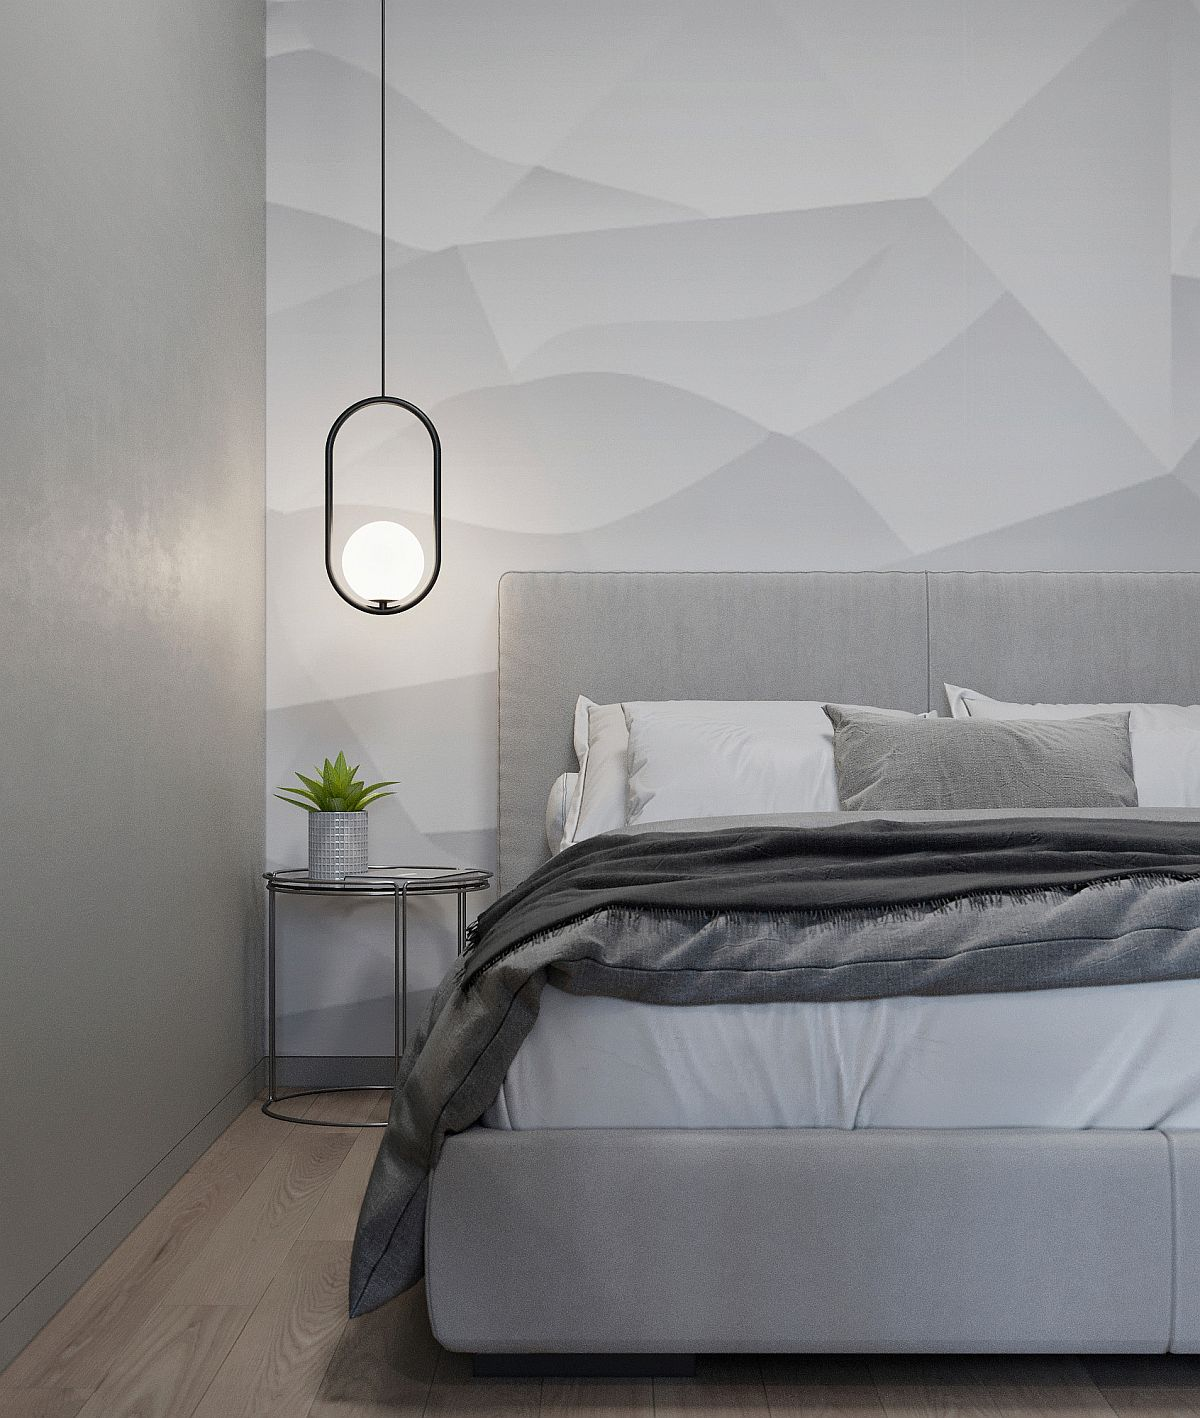 Polished-bedroom-in-gray-with-contemporary-industrial-style-that-is-urbane-58600